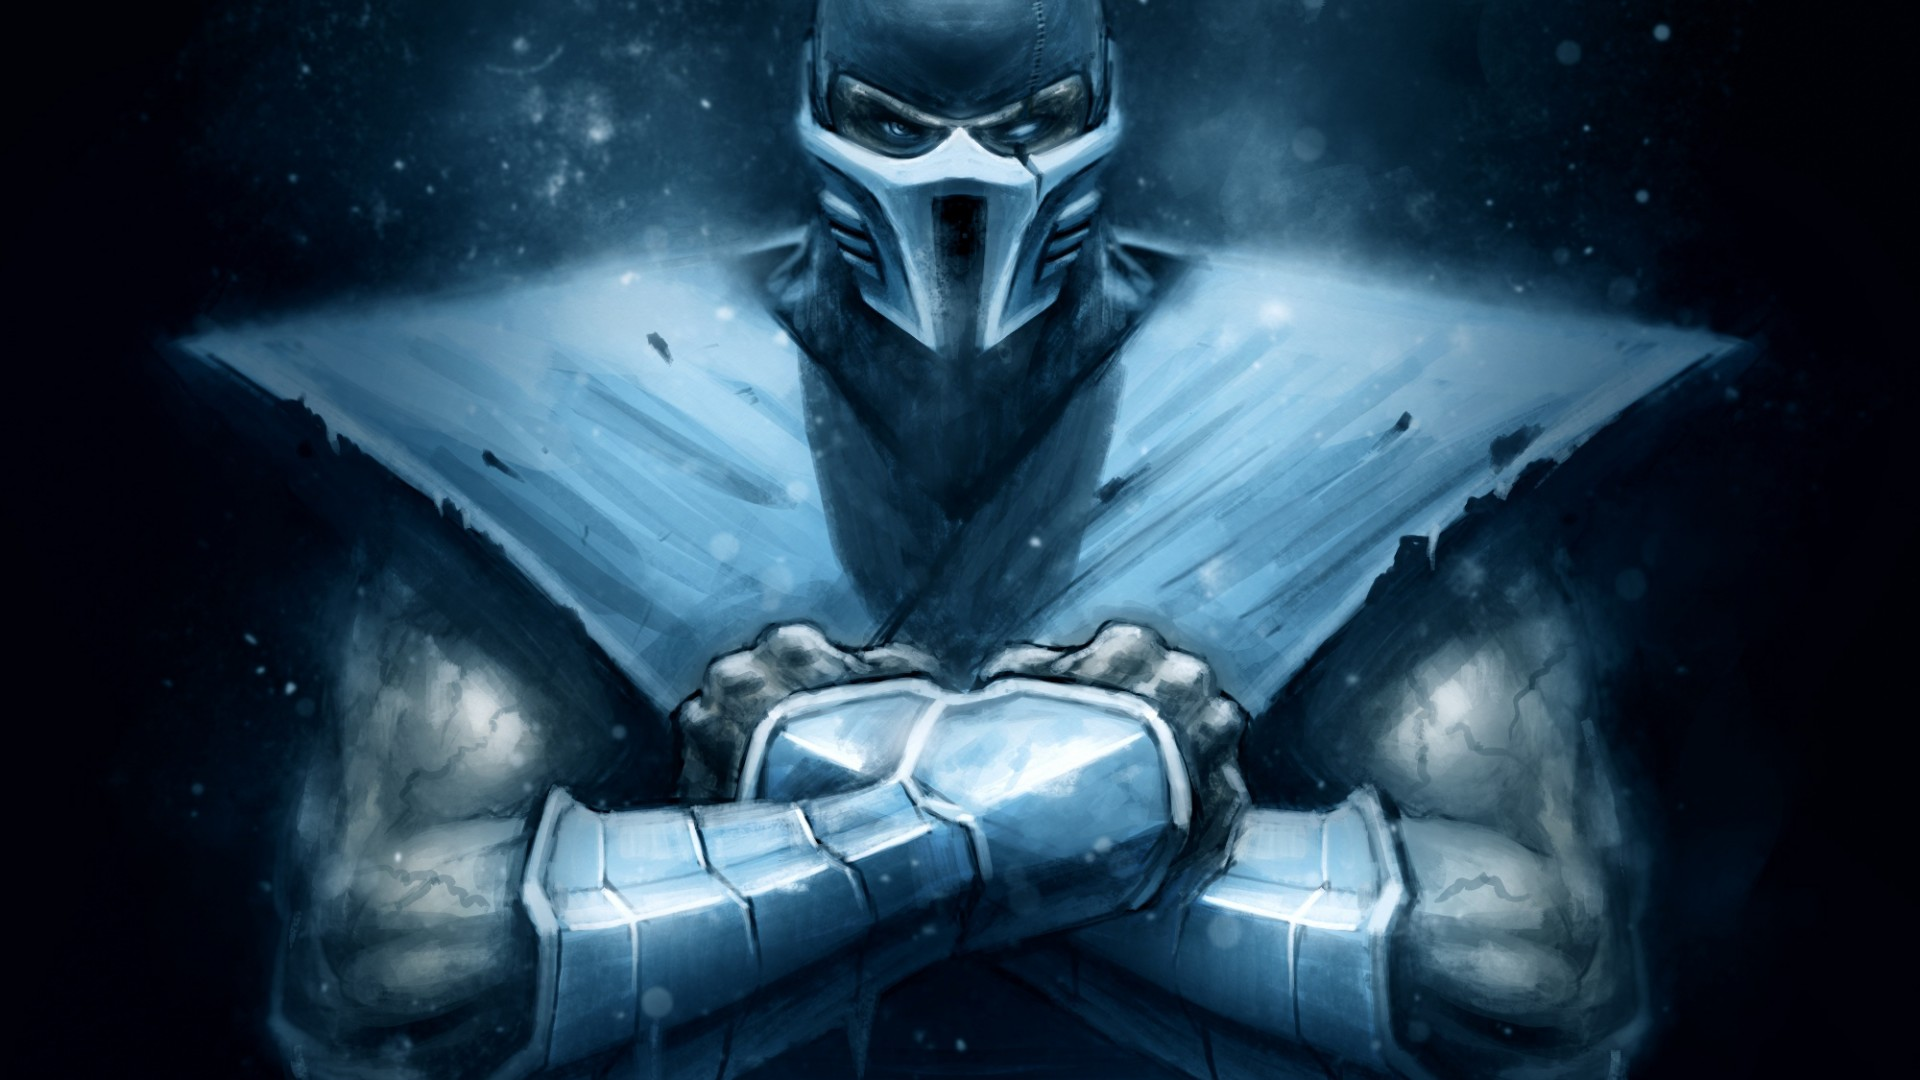 Free Download Full Hd Wallpaper Sub Zero Front View Art Mortal